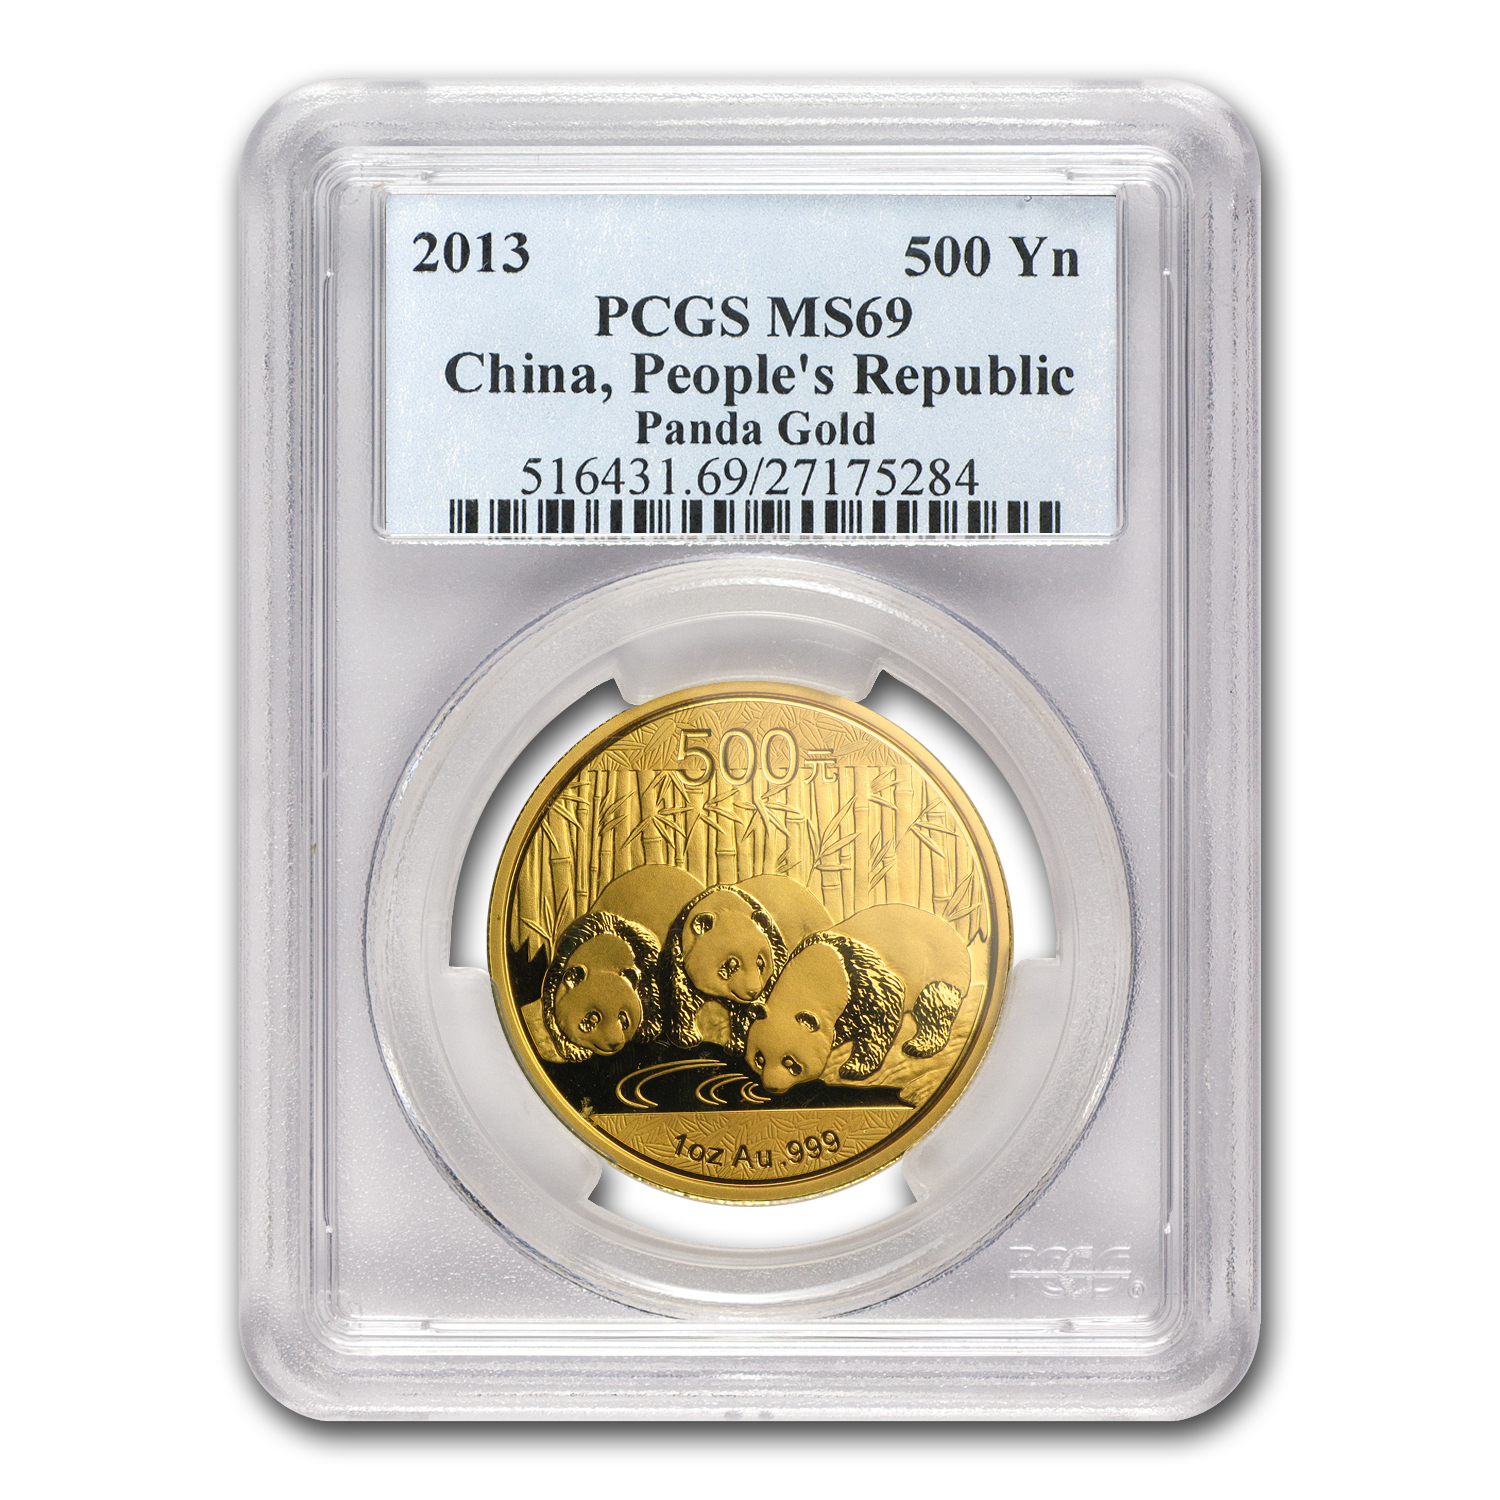 2013 1 oz Gold Chinese Panda MS-69 PCGS